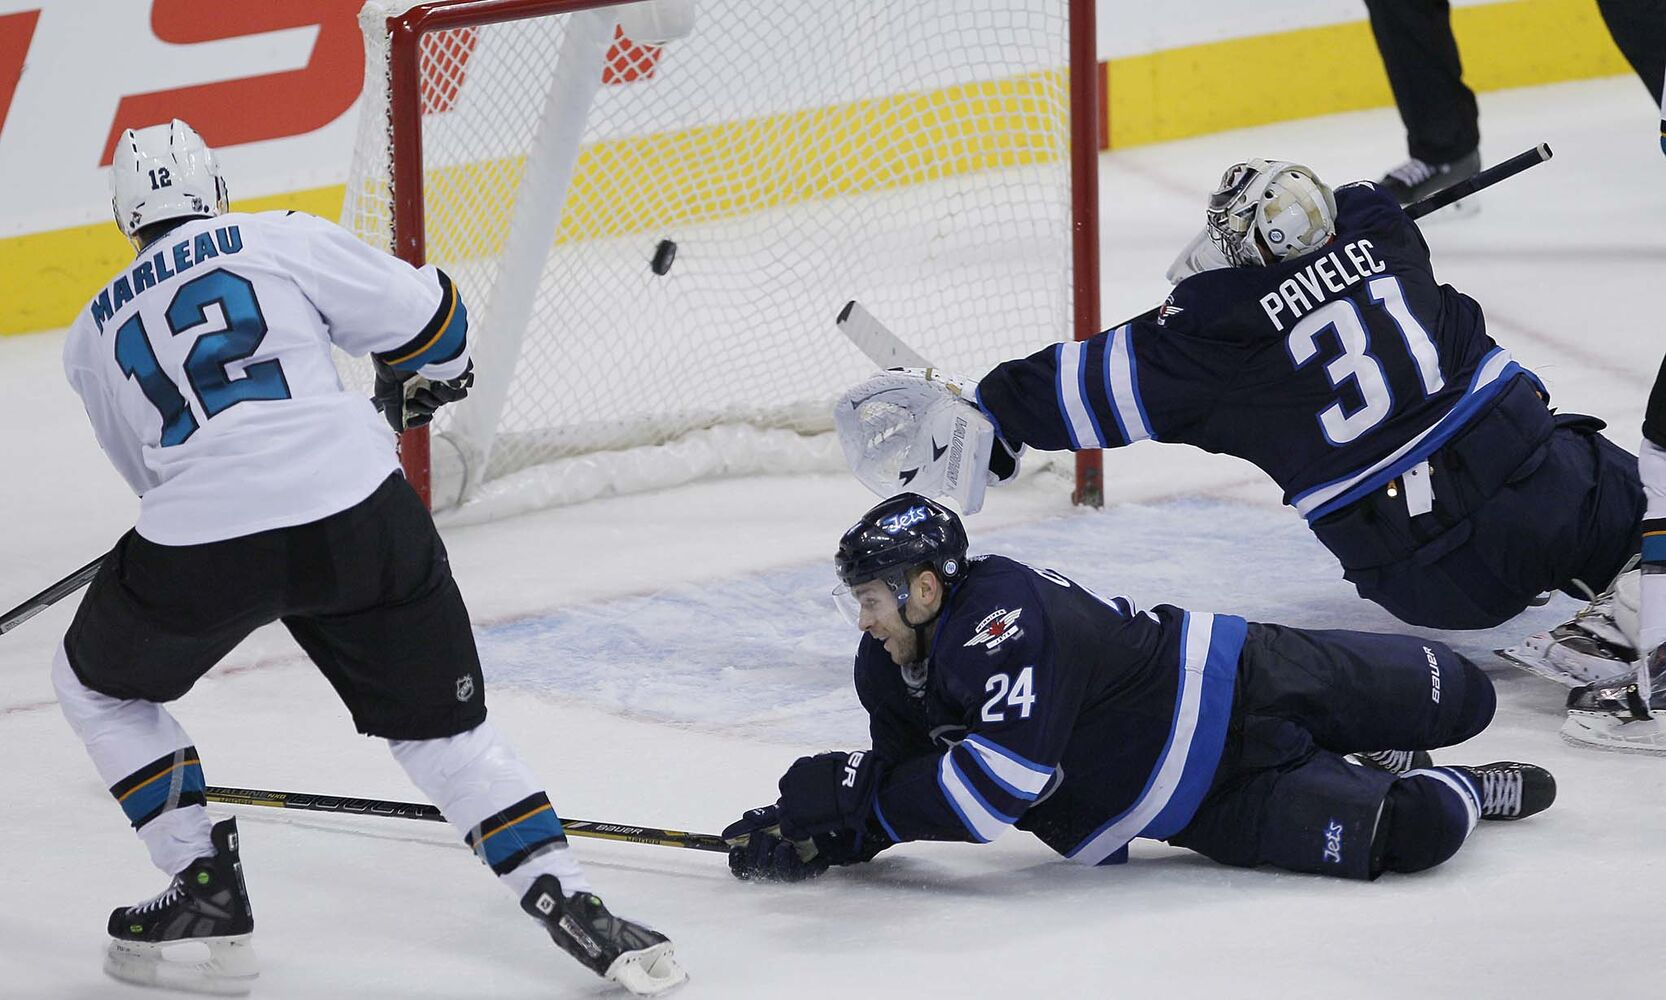 San Jose Sharks' Patrick Marleau (12) scores on Winnipeg Jets' goaltender Ondrej Pavelec (31) and Grant Clitsome (24) in NHL overtime action.